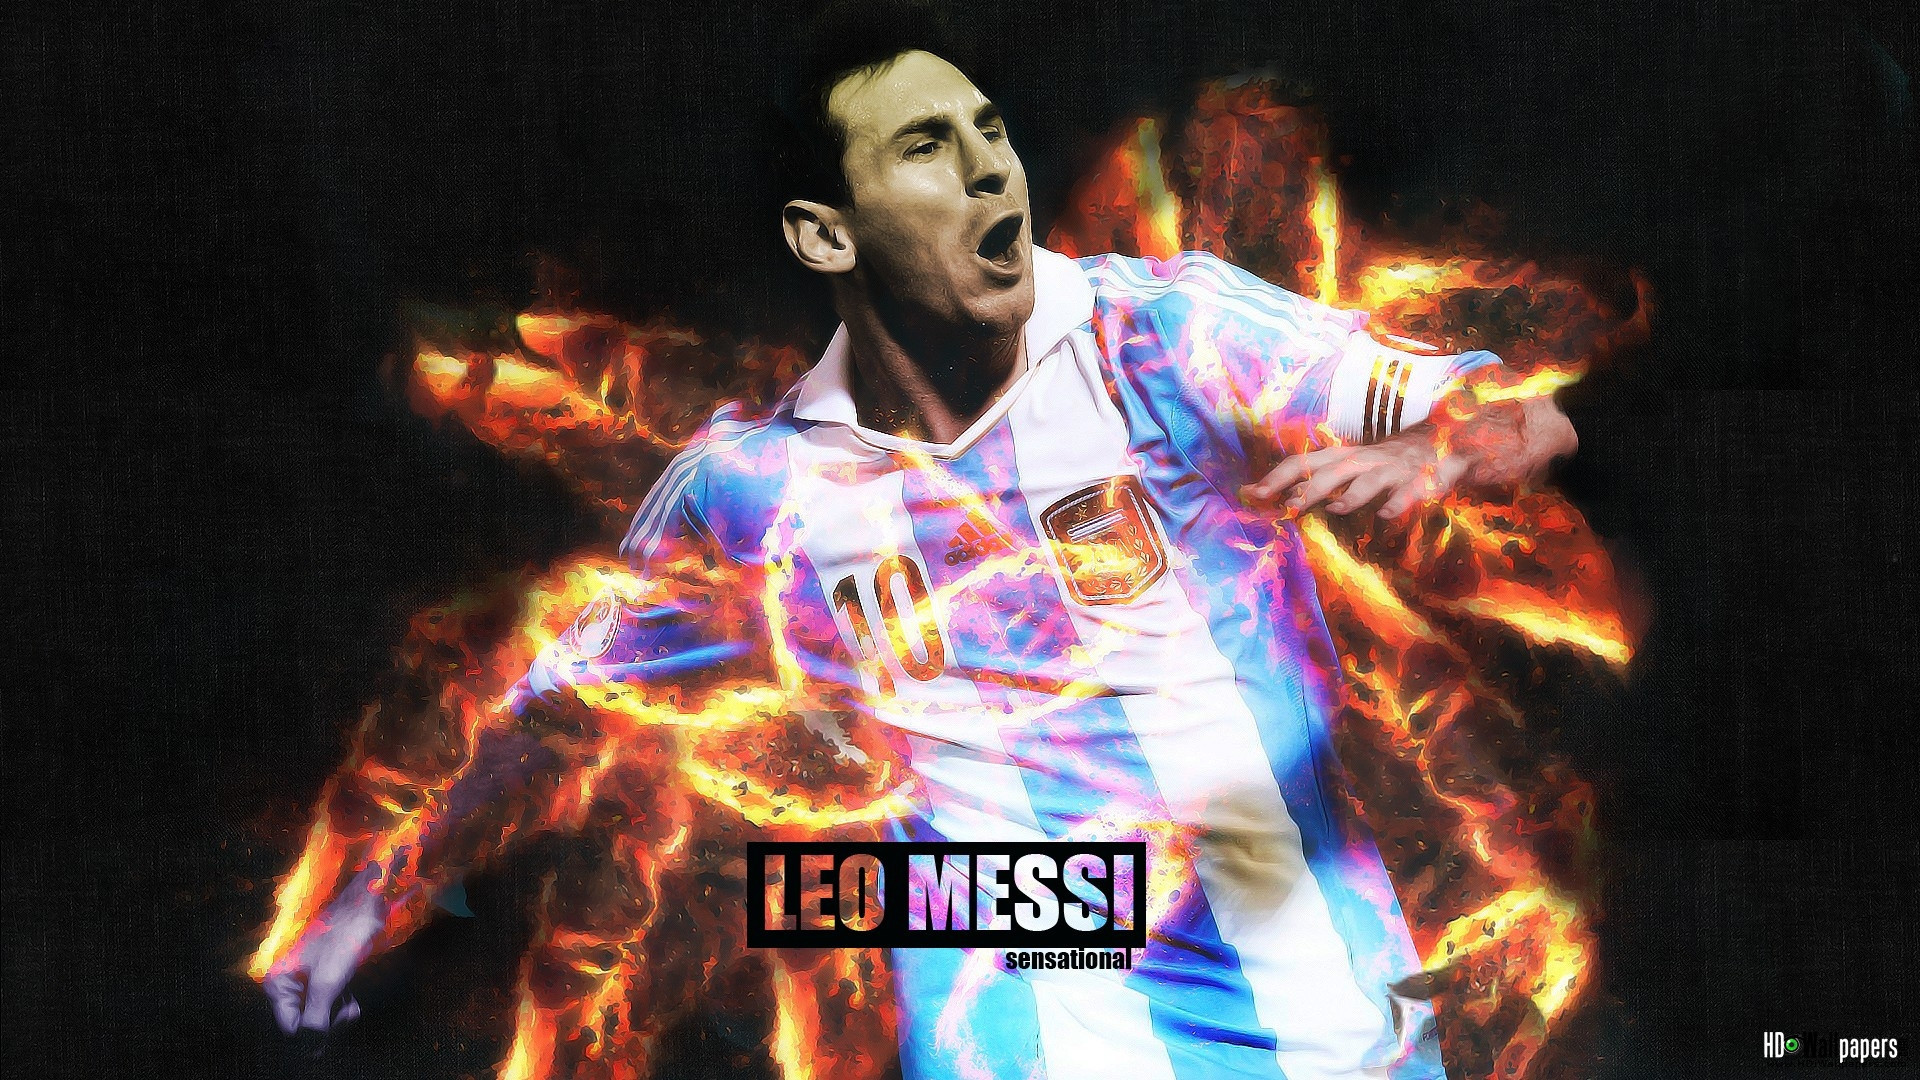 Messi Wallpapers HD Wallpaper 1920×1080 Images Of Messi Wallpapers (66  Wallpapers) |